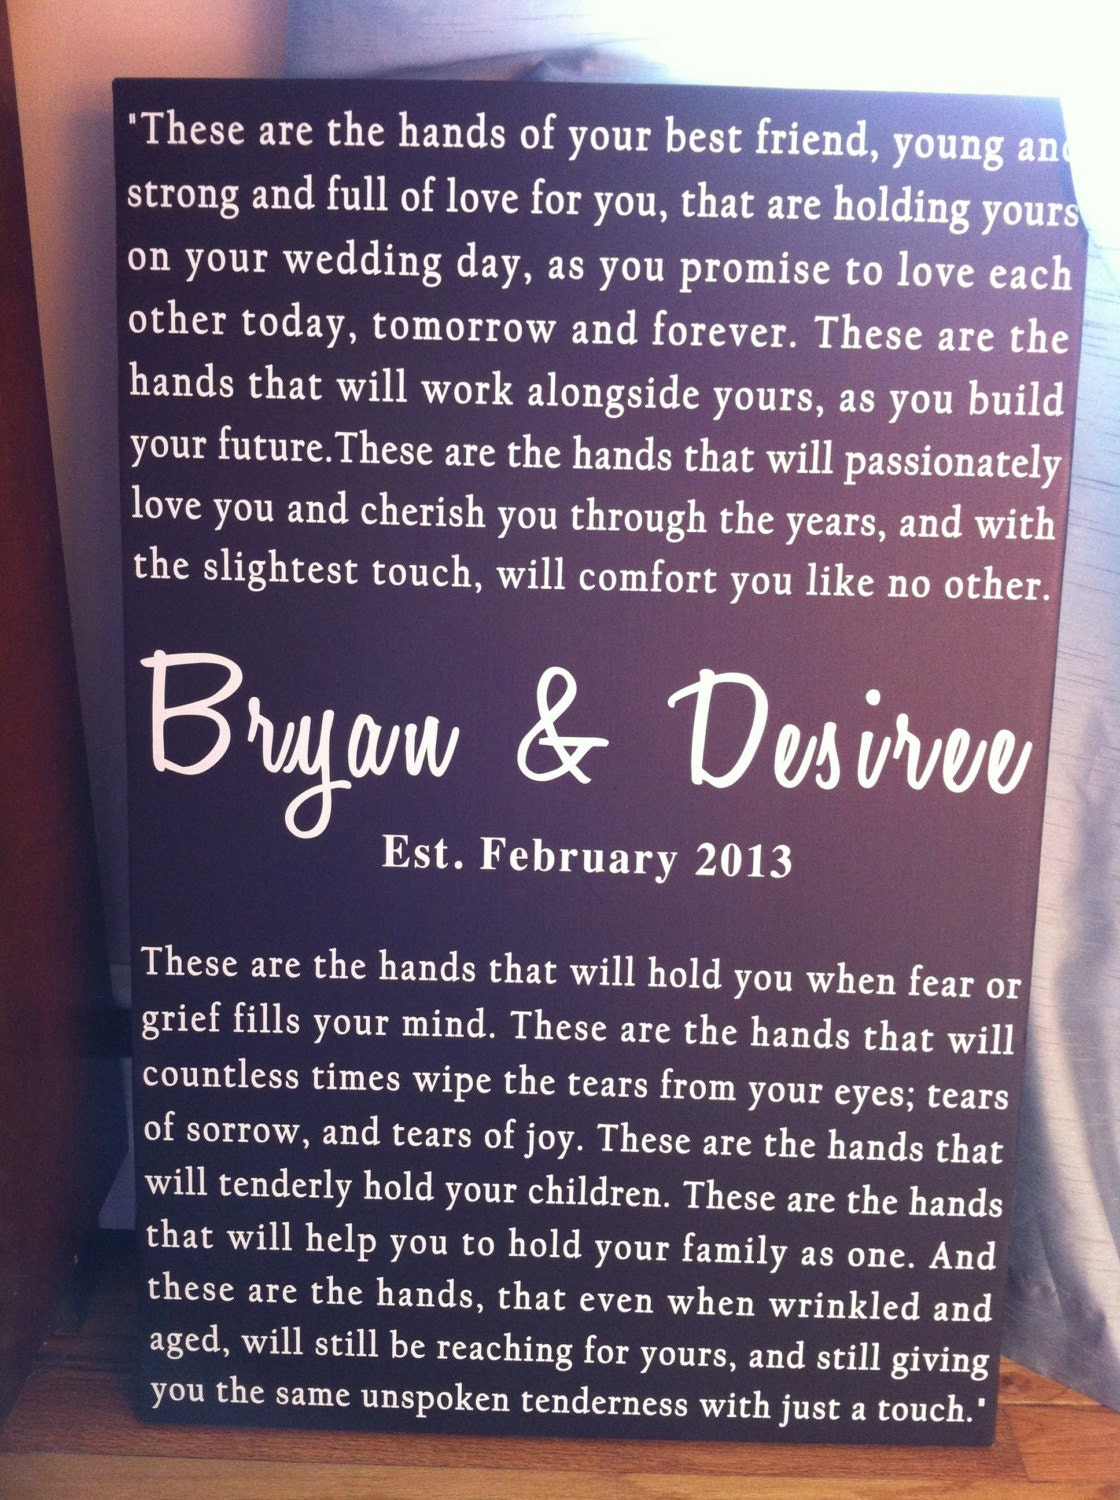 Personalized Wedding Vows For The Bride And Groom Word Art